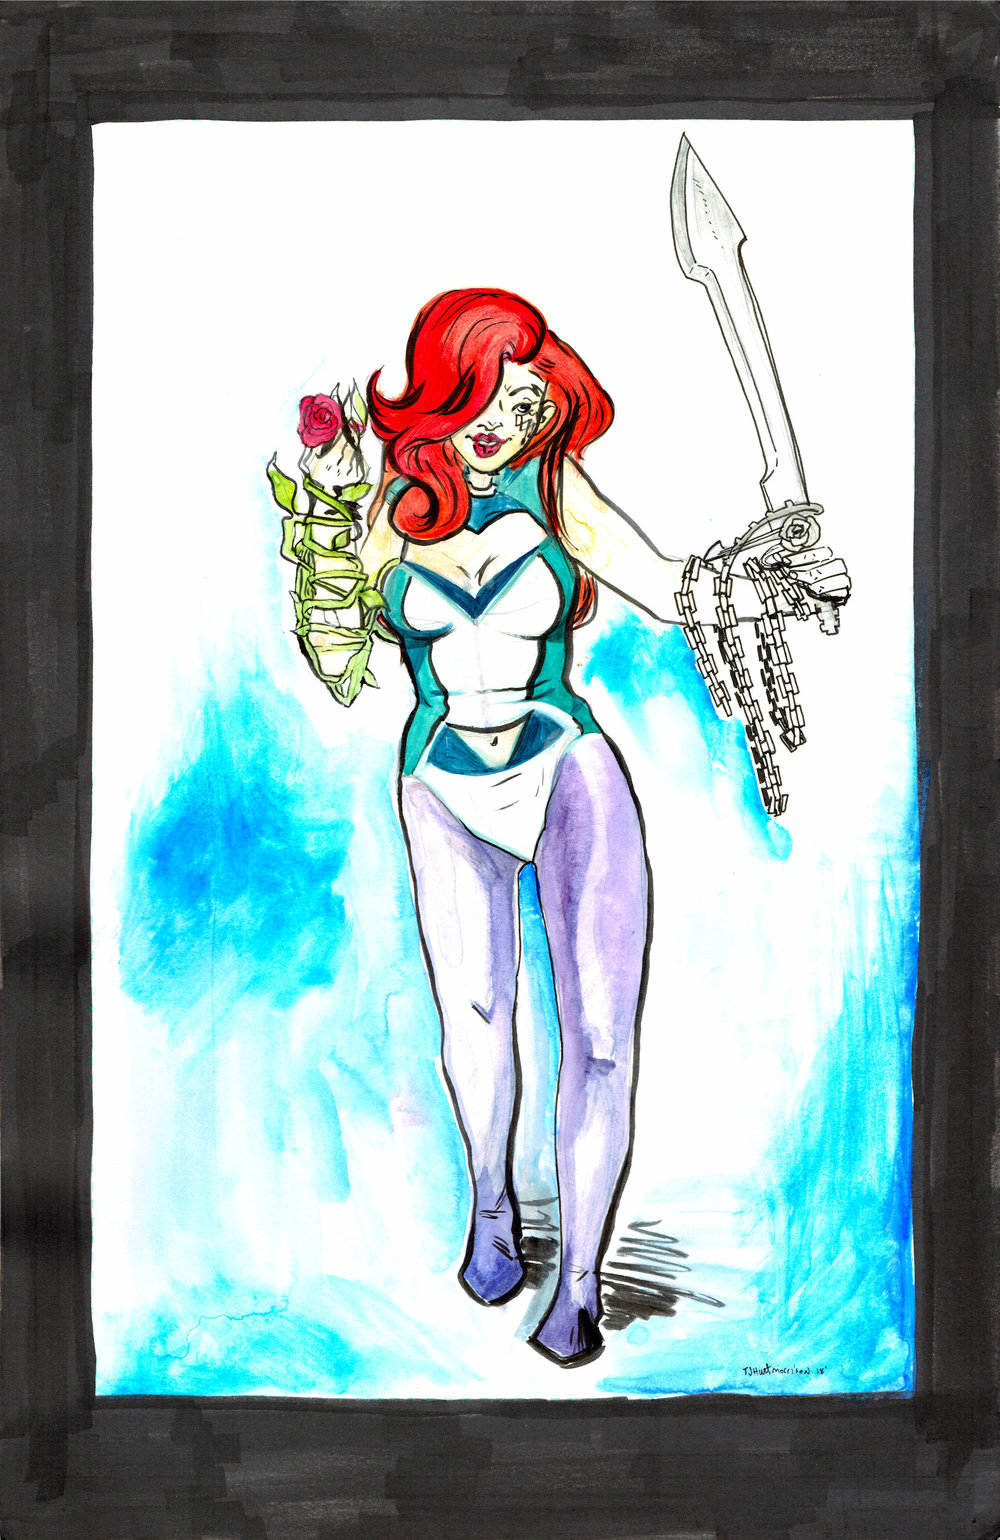 Dawn  - a recent commission from Thea J. Hunt.